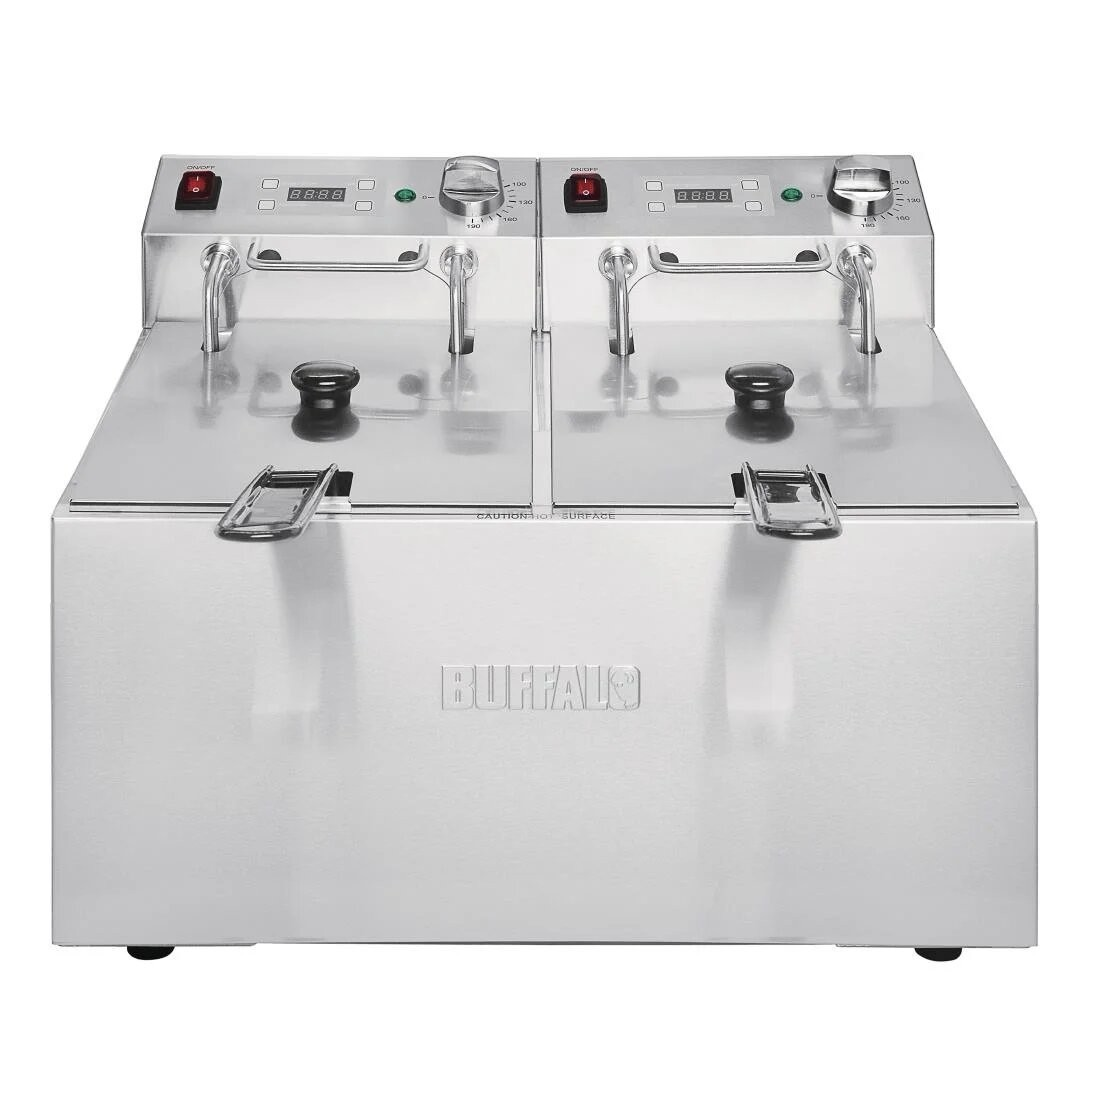 Buffalo FC259 Twin Tank Countertop Fryer with Five Litre Tanks & Timers